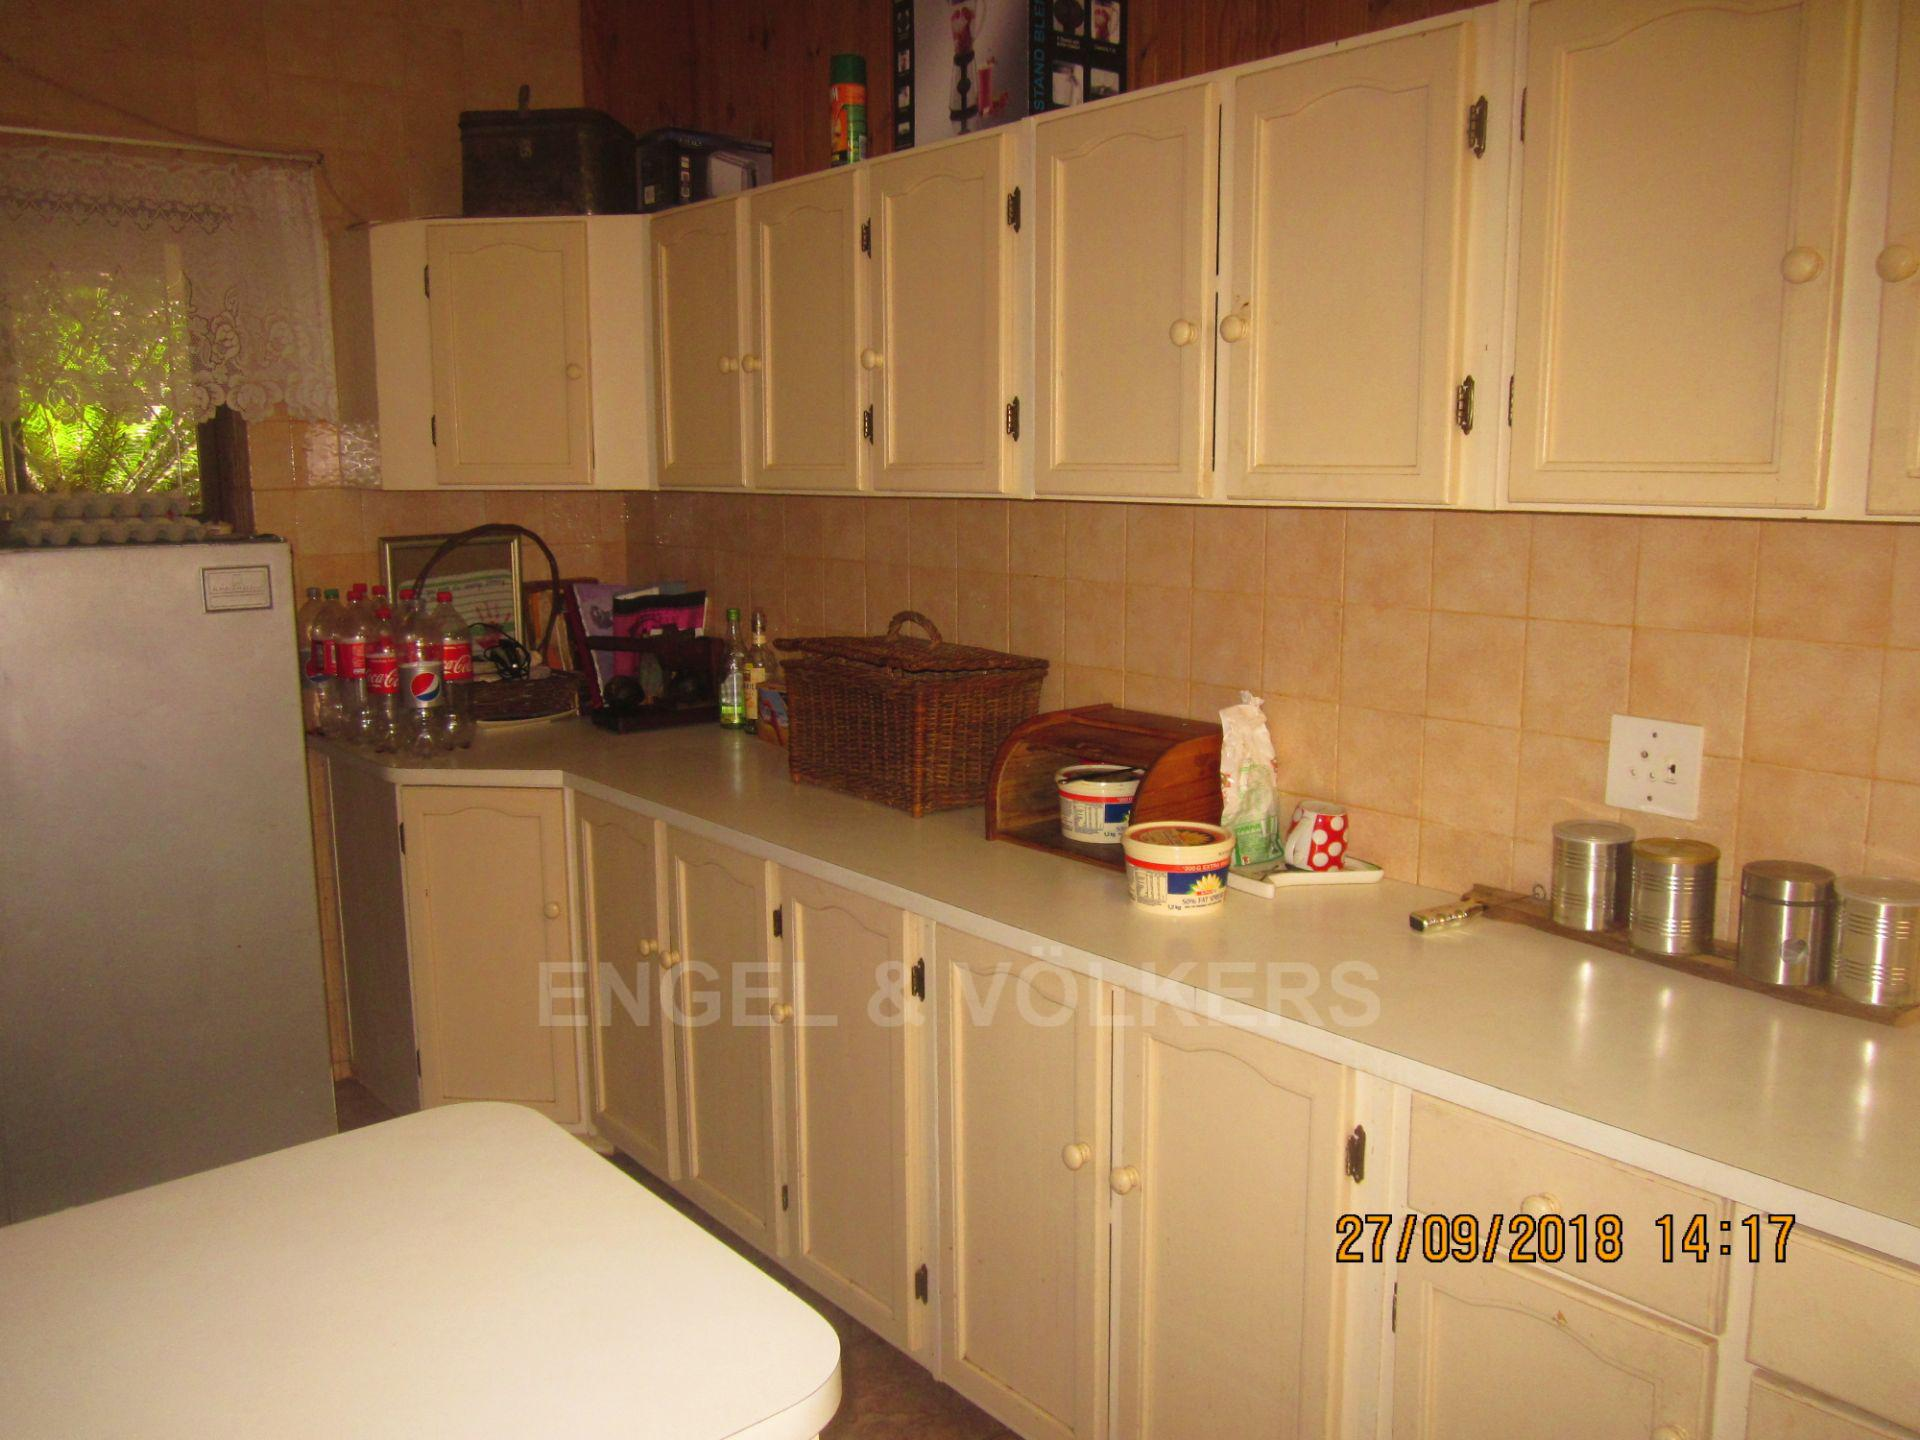 House in Glenmore - 006 Kitchen.JPG